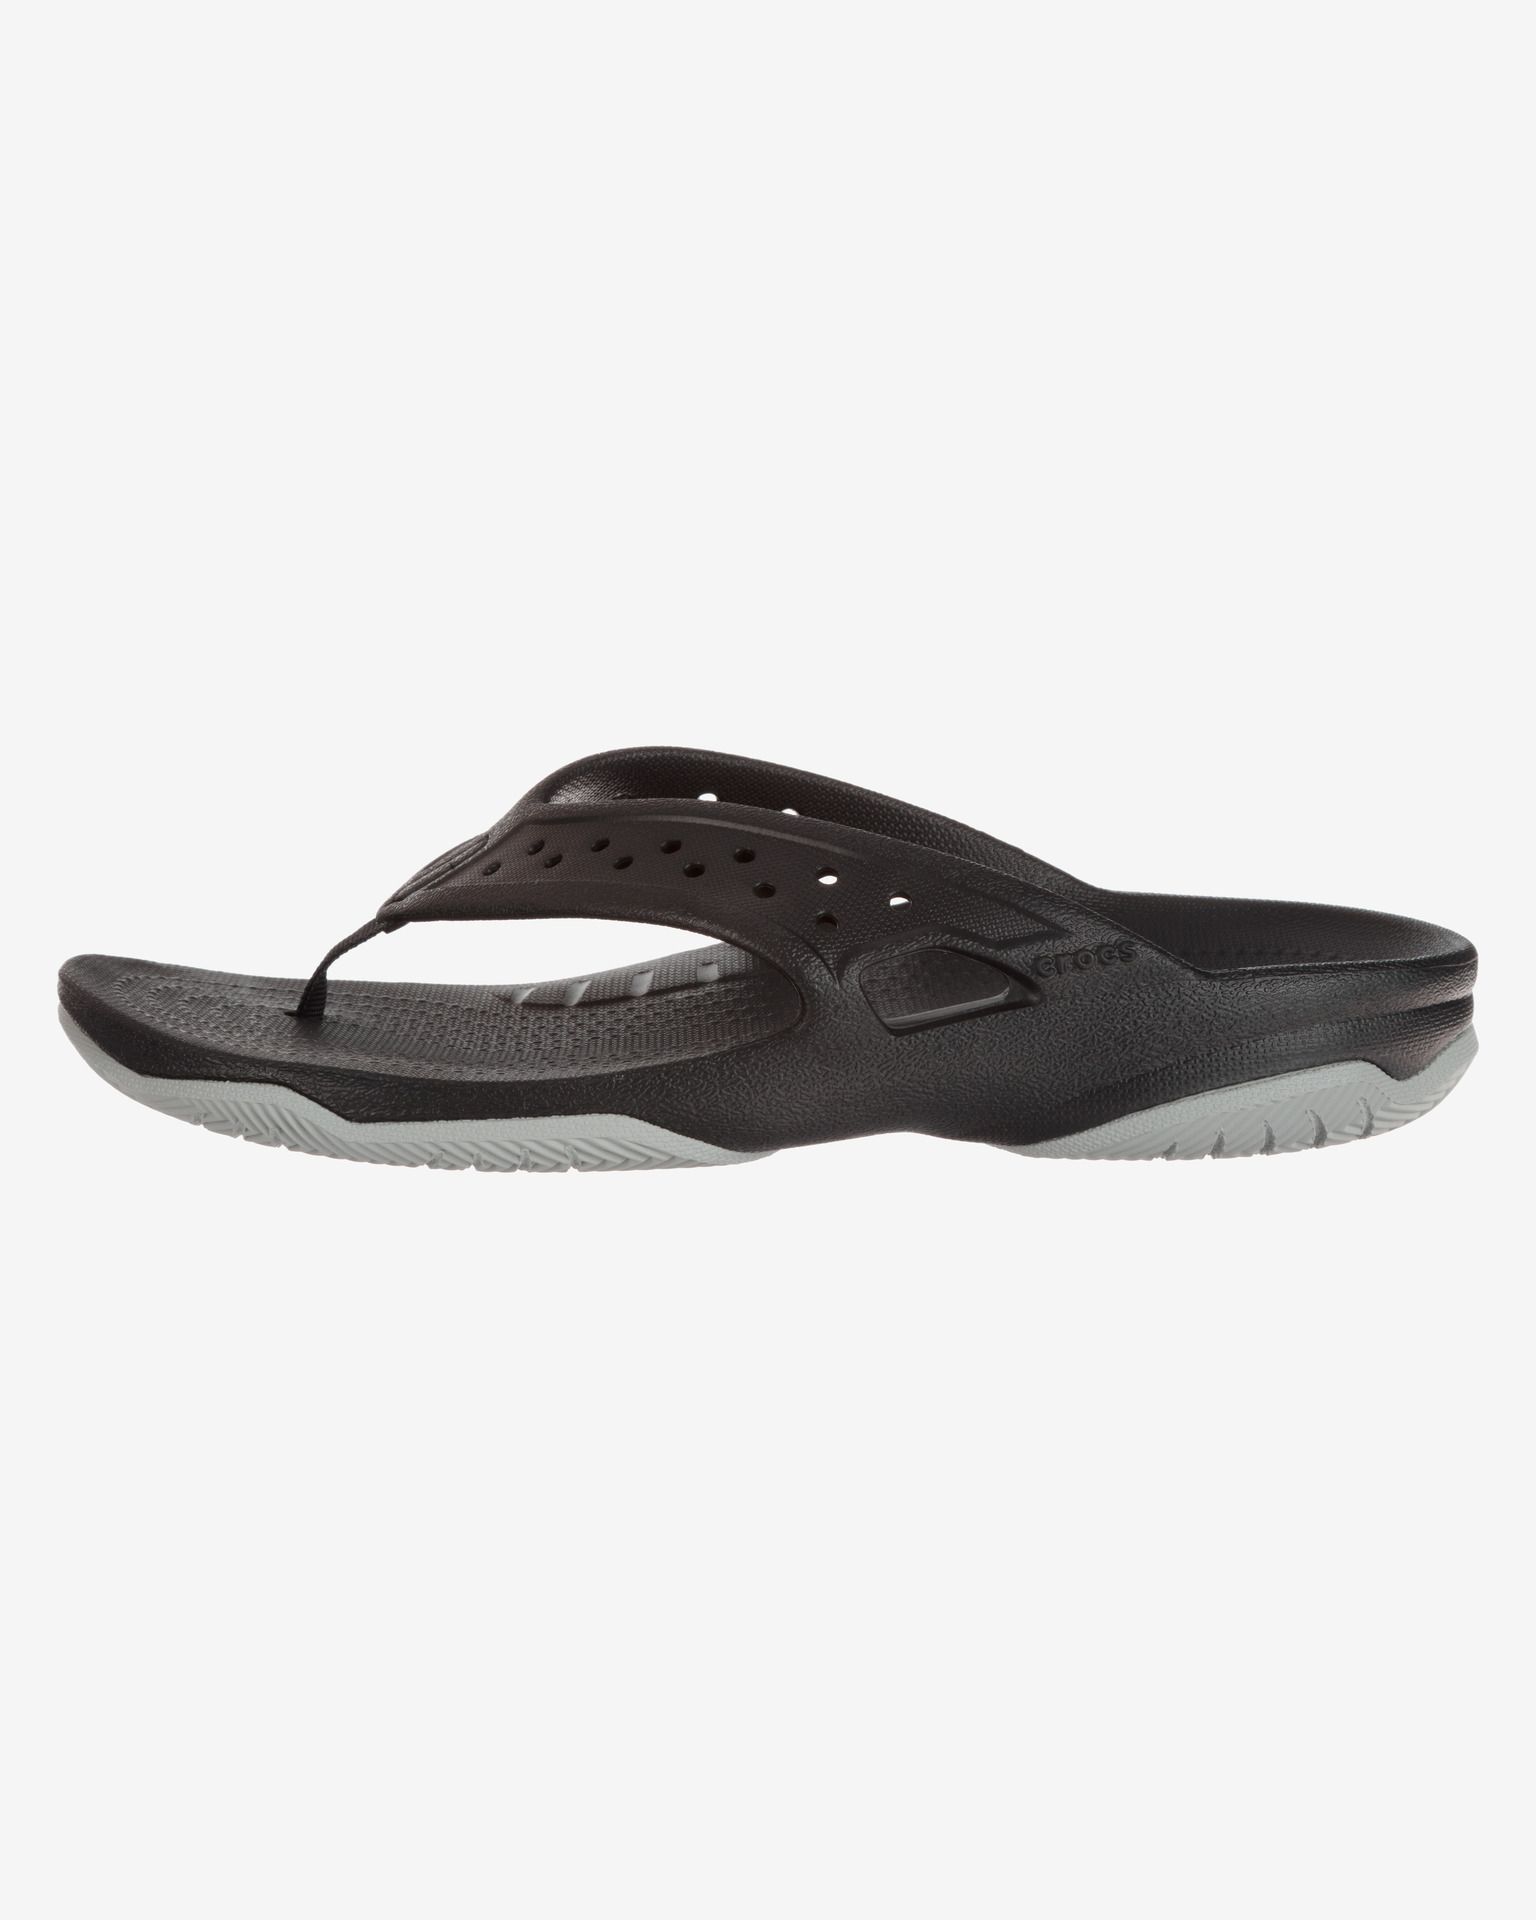 Swiftwater Deck Žabky Crocs